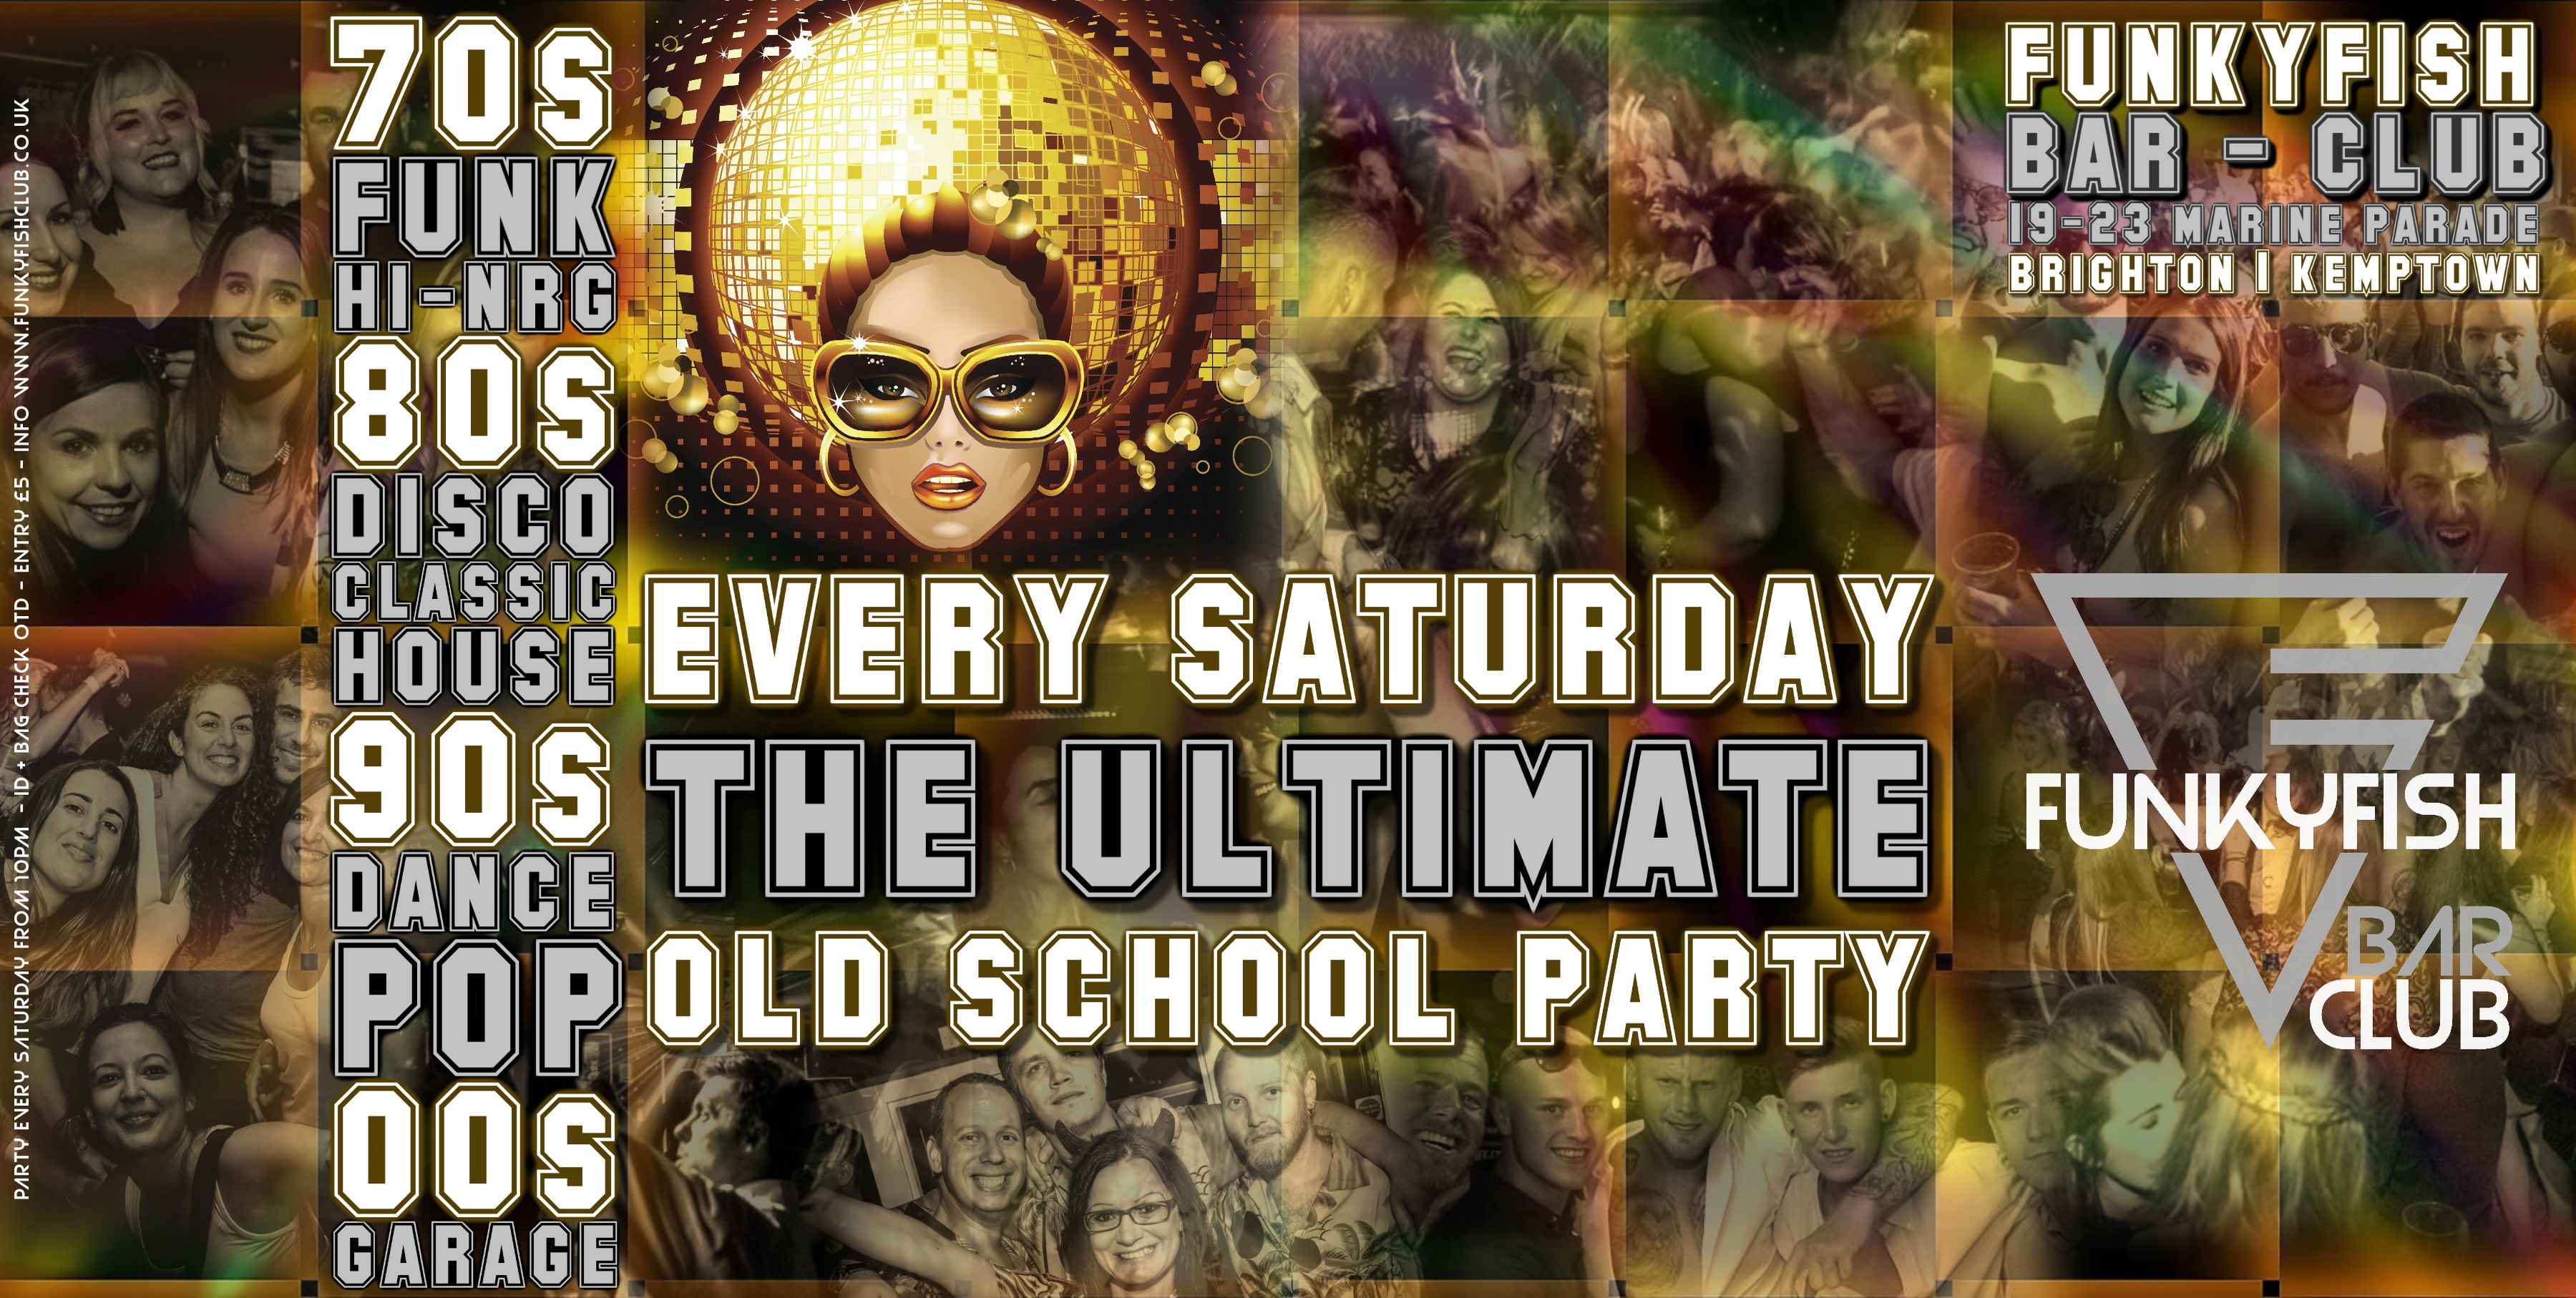 The Ultimate Old School Party